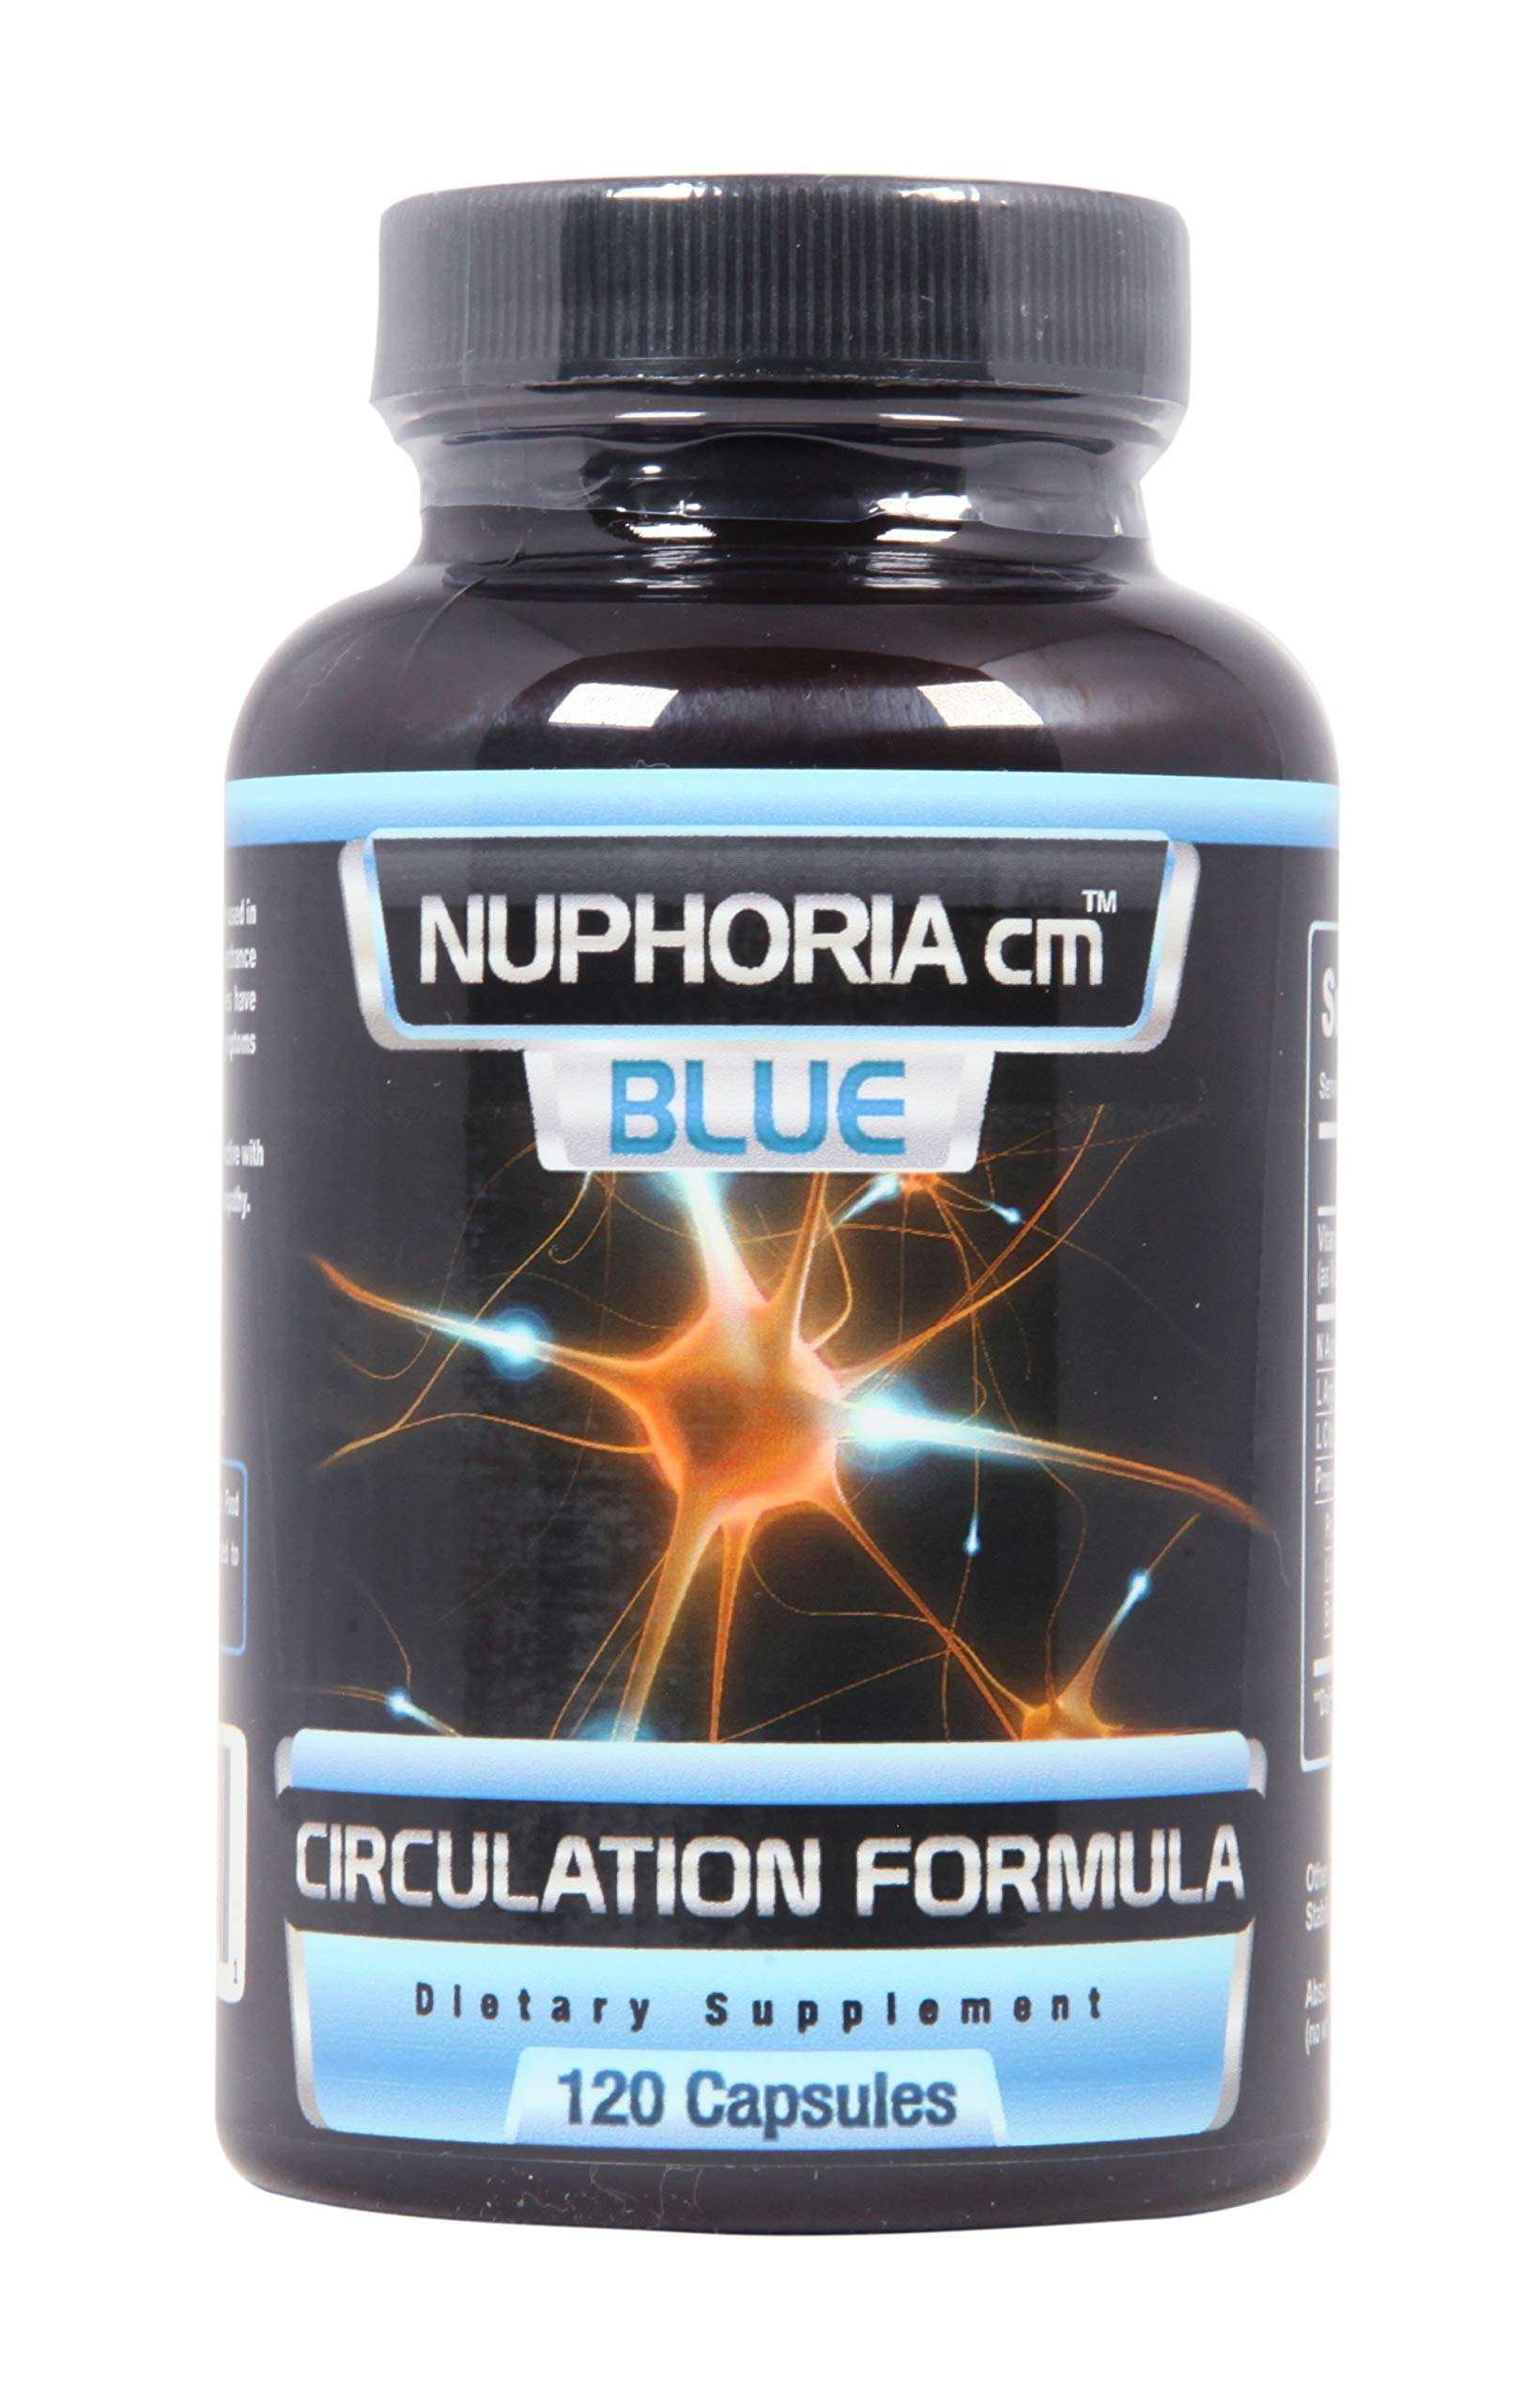 Nuphoria Blue - Neuropathy Supplement with Acetyl L-Carnitine - Supports Circulation - 30 Day Supply (120 Count) by Nuphoria cm (Image #1)